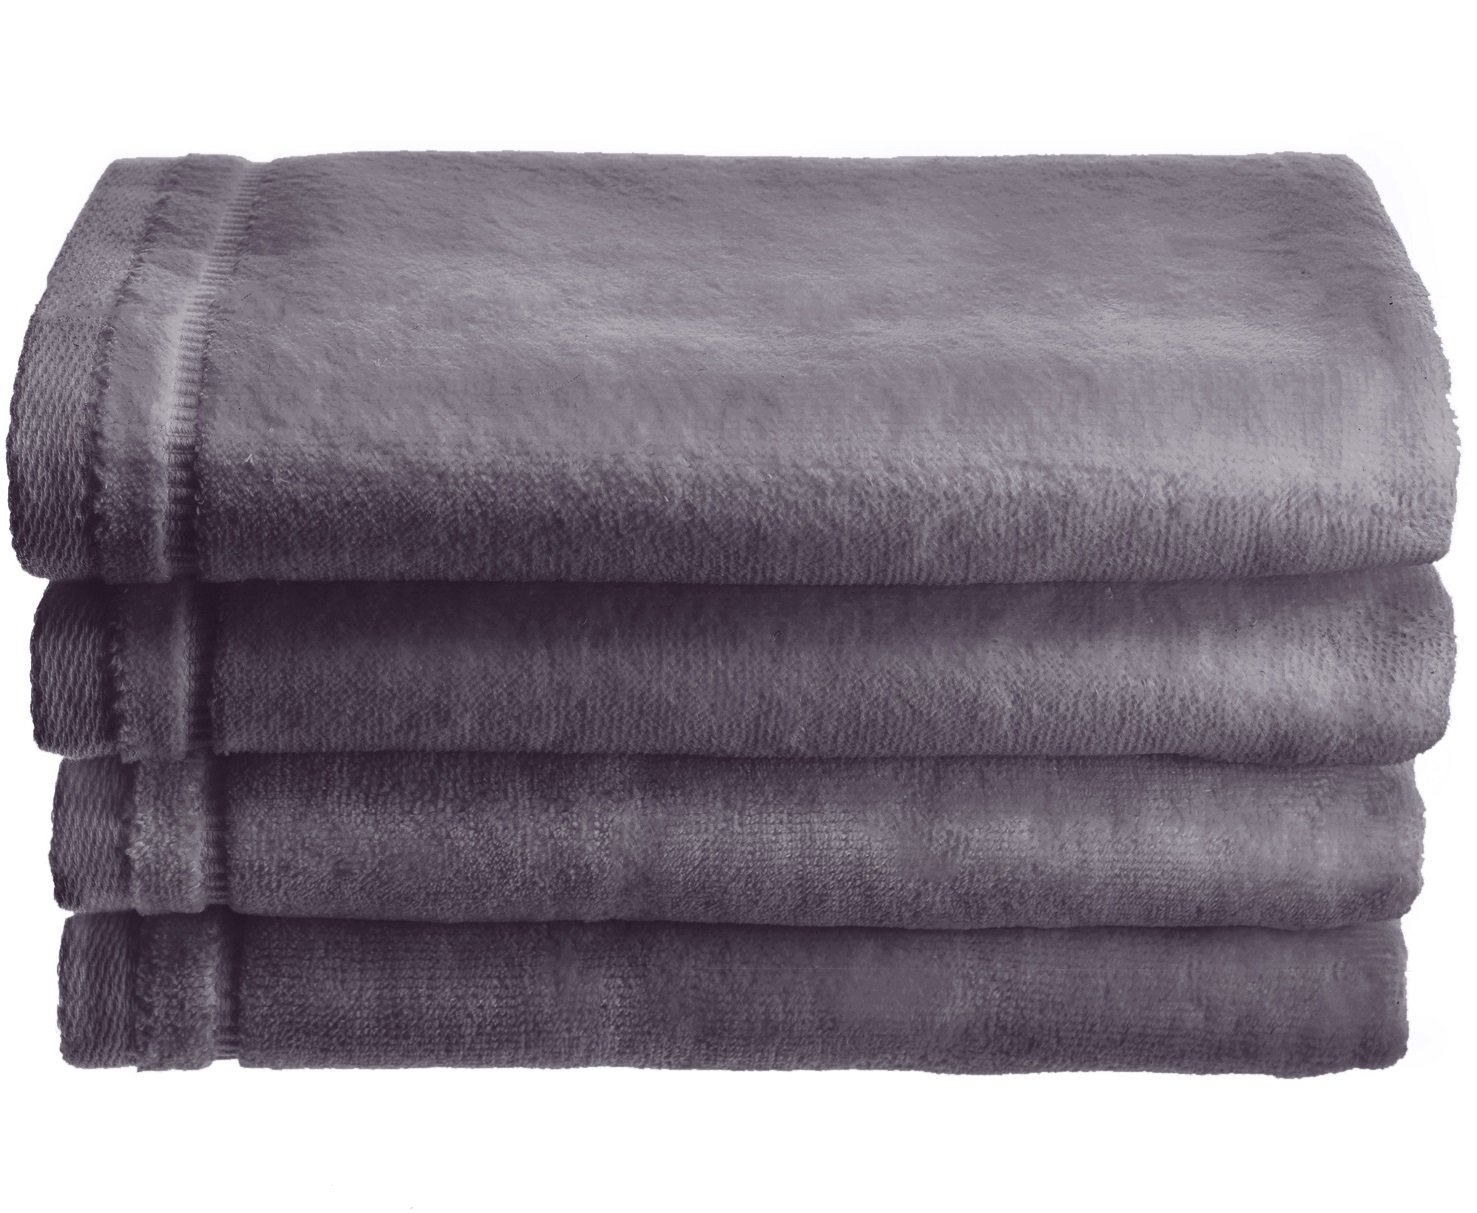 Creative Scents Cotton Velour Fingertip Towel, 4 Piece Set, 11 by 18-Inch, Gray with Embroidered Grey Trim